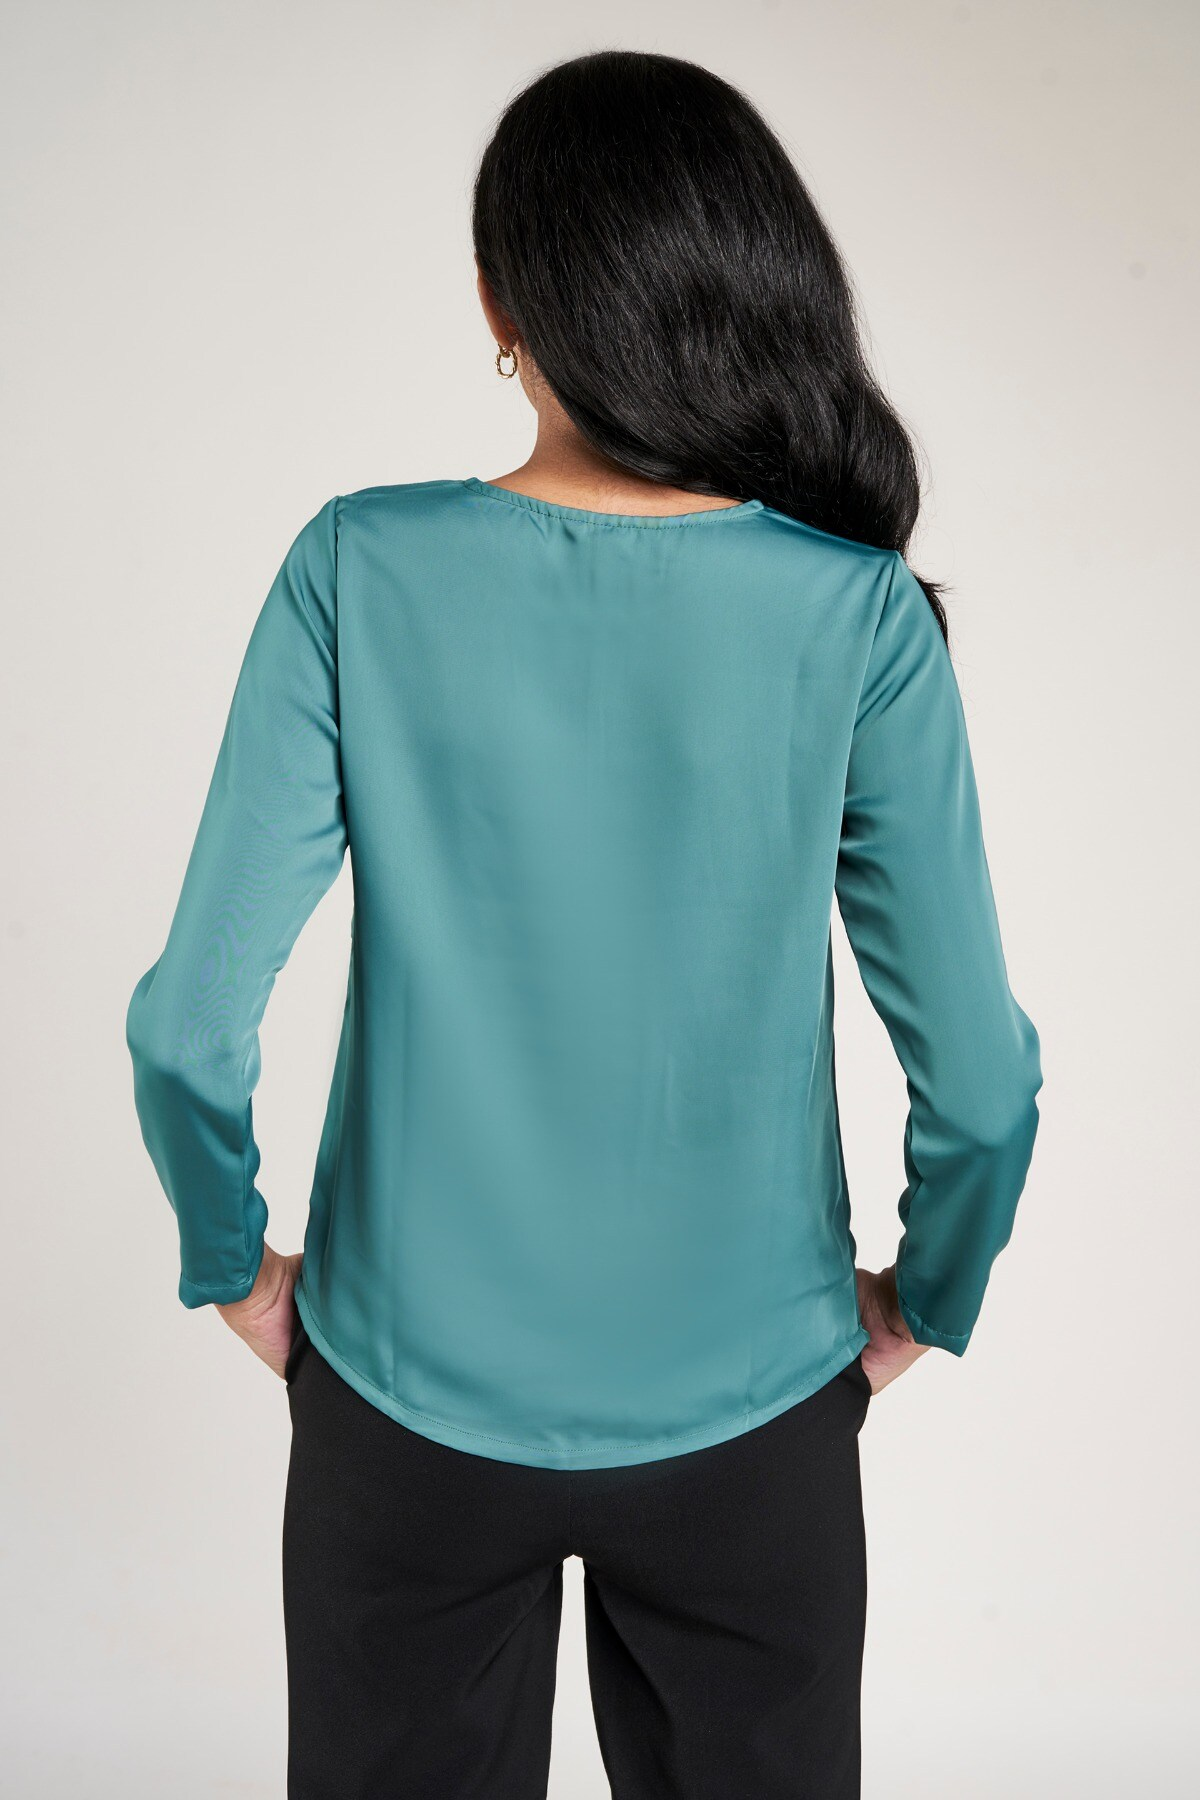 AND   Teal Solid A-Line Top